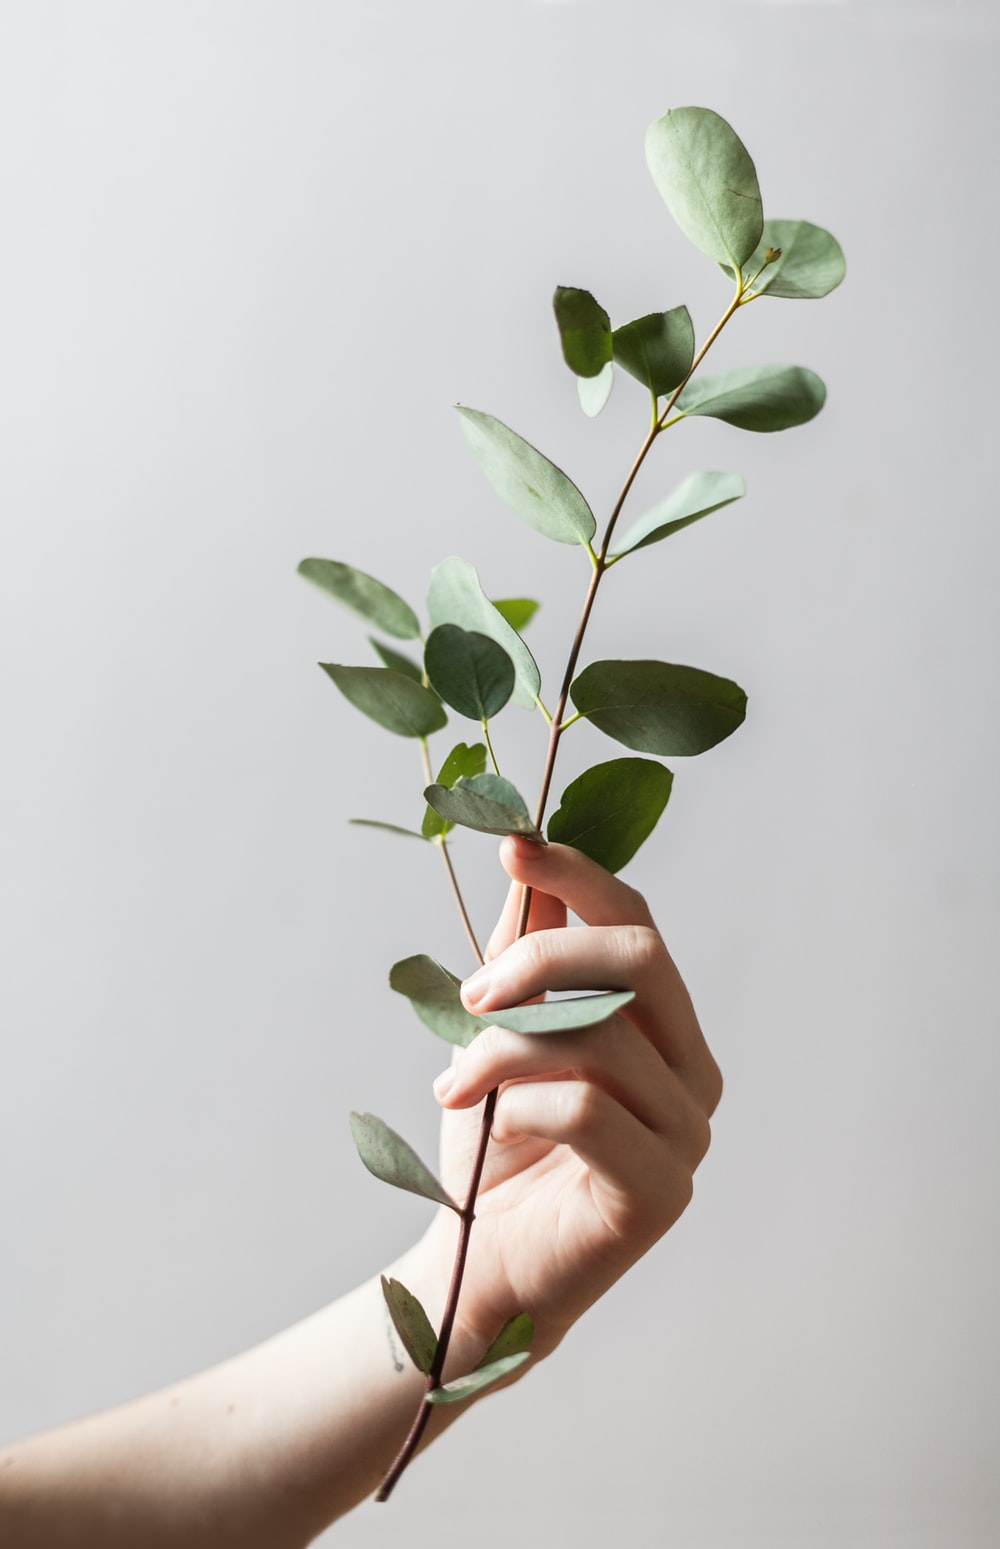 person holding leaf plant